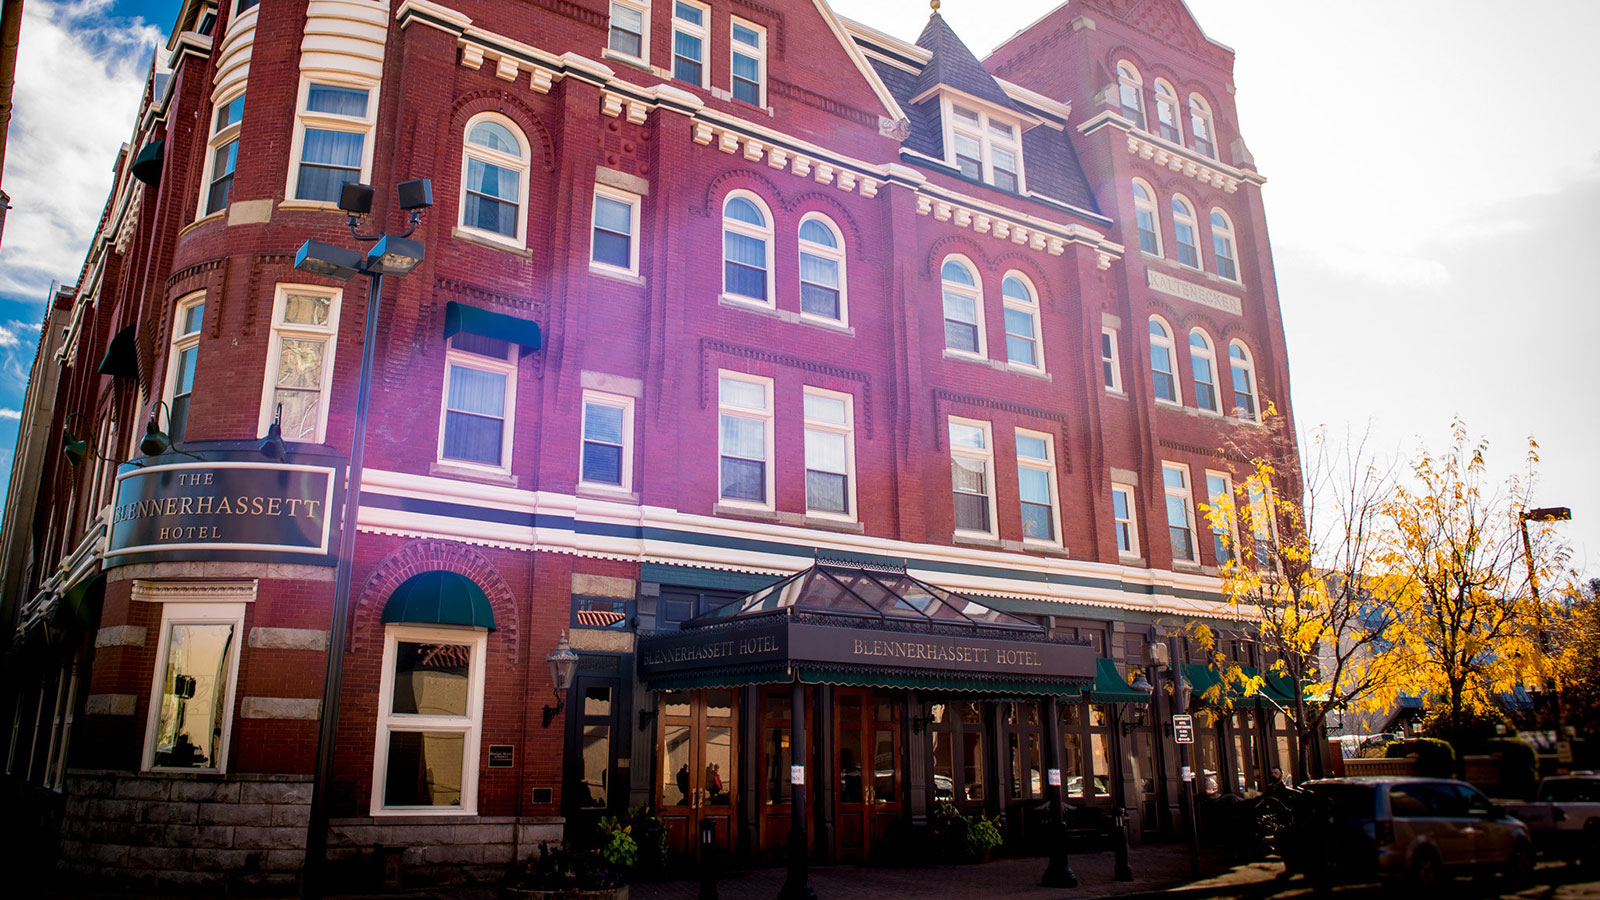 Image of Entrance The Blennerhassett Hotel, 1889, Member of Historic Hotels of America, in Parkersburg, West Virginia, Overview